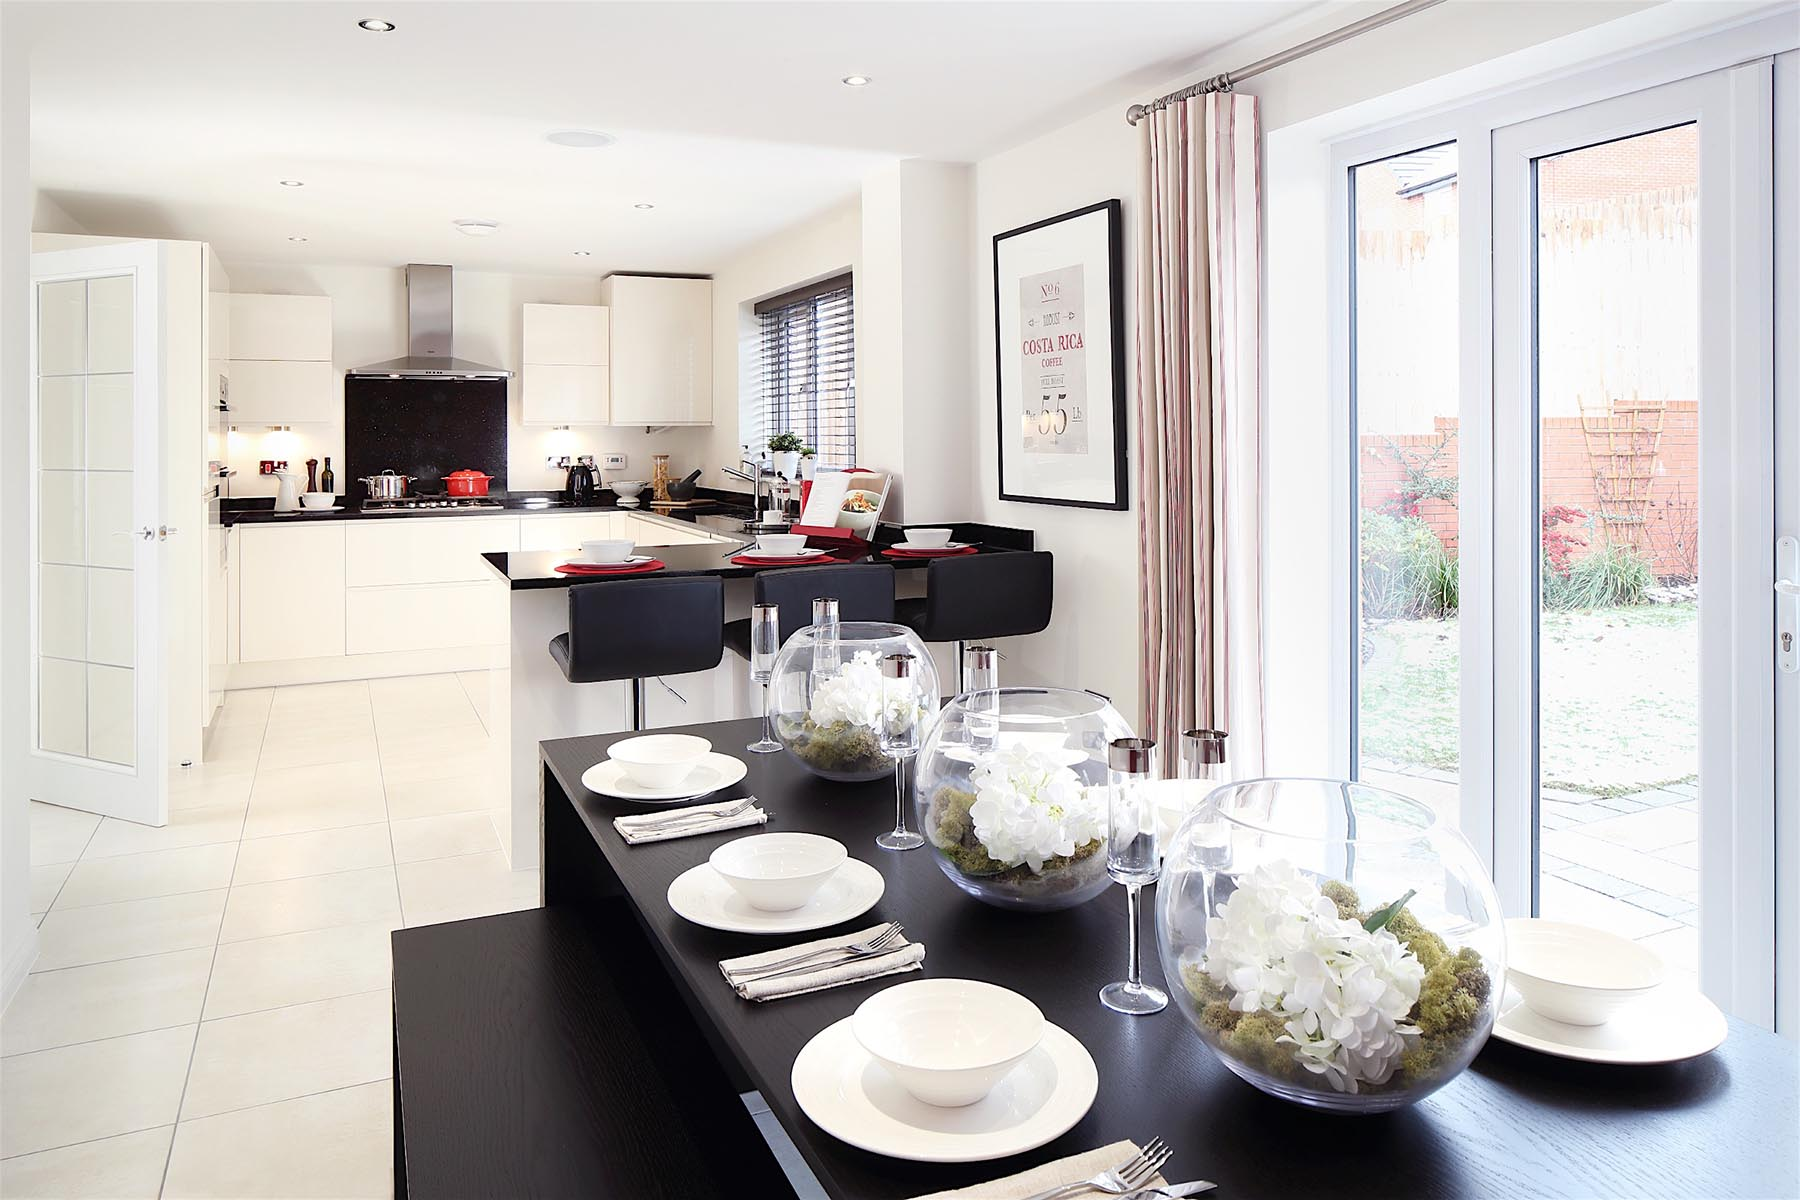 TWNW_Spring_Croft_Shelford_Dining_Kitchen